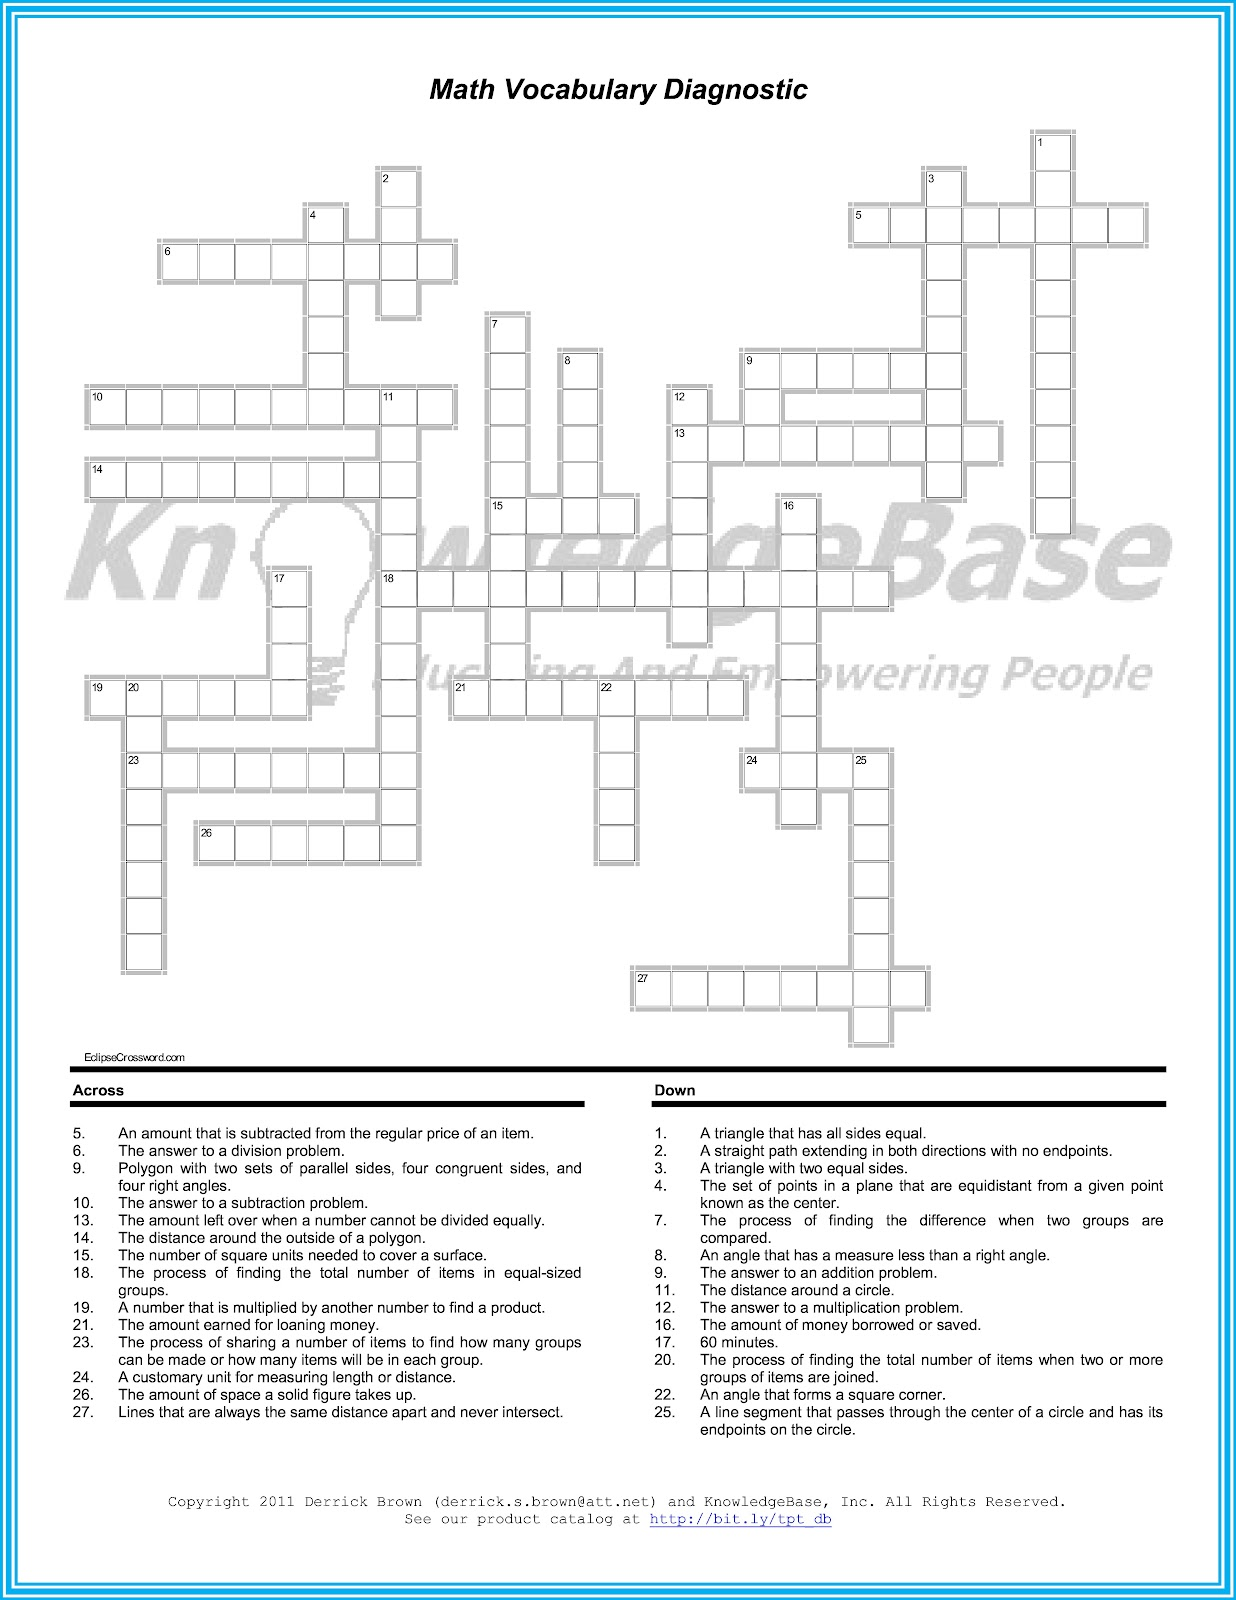 Mathematical Crossword Puzzle aprita – Math Crossword Puzzle Worksheets